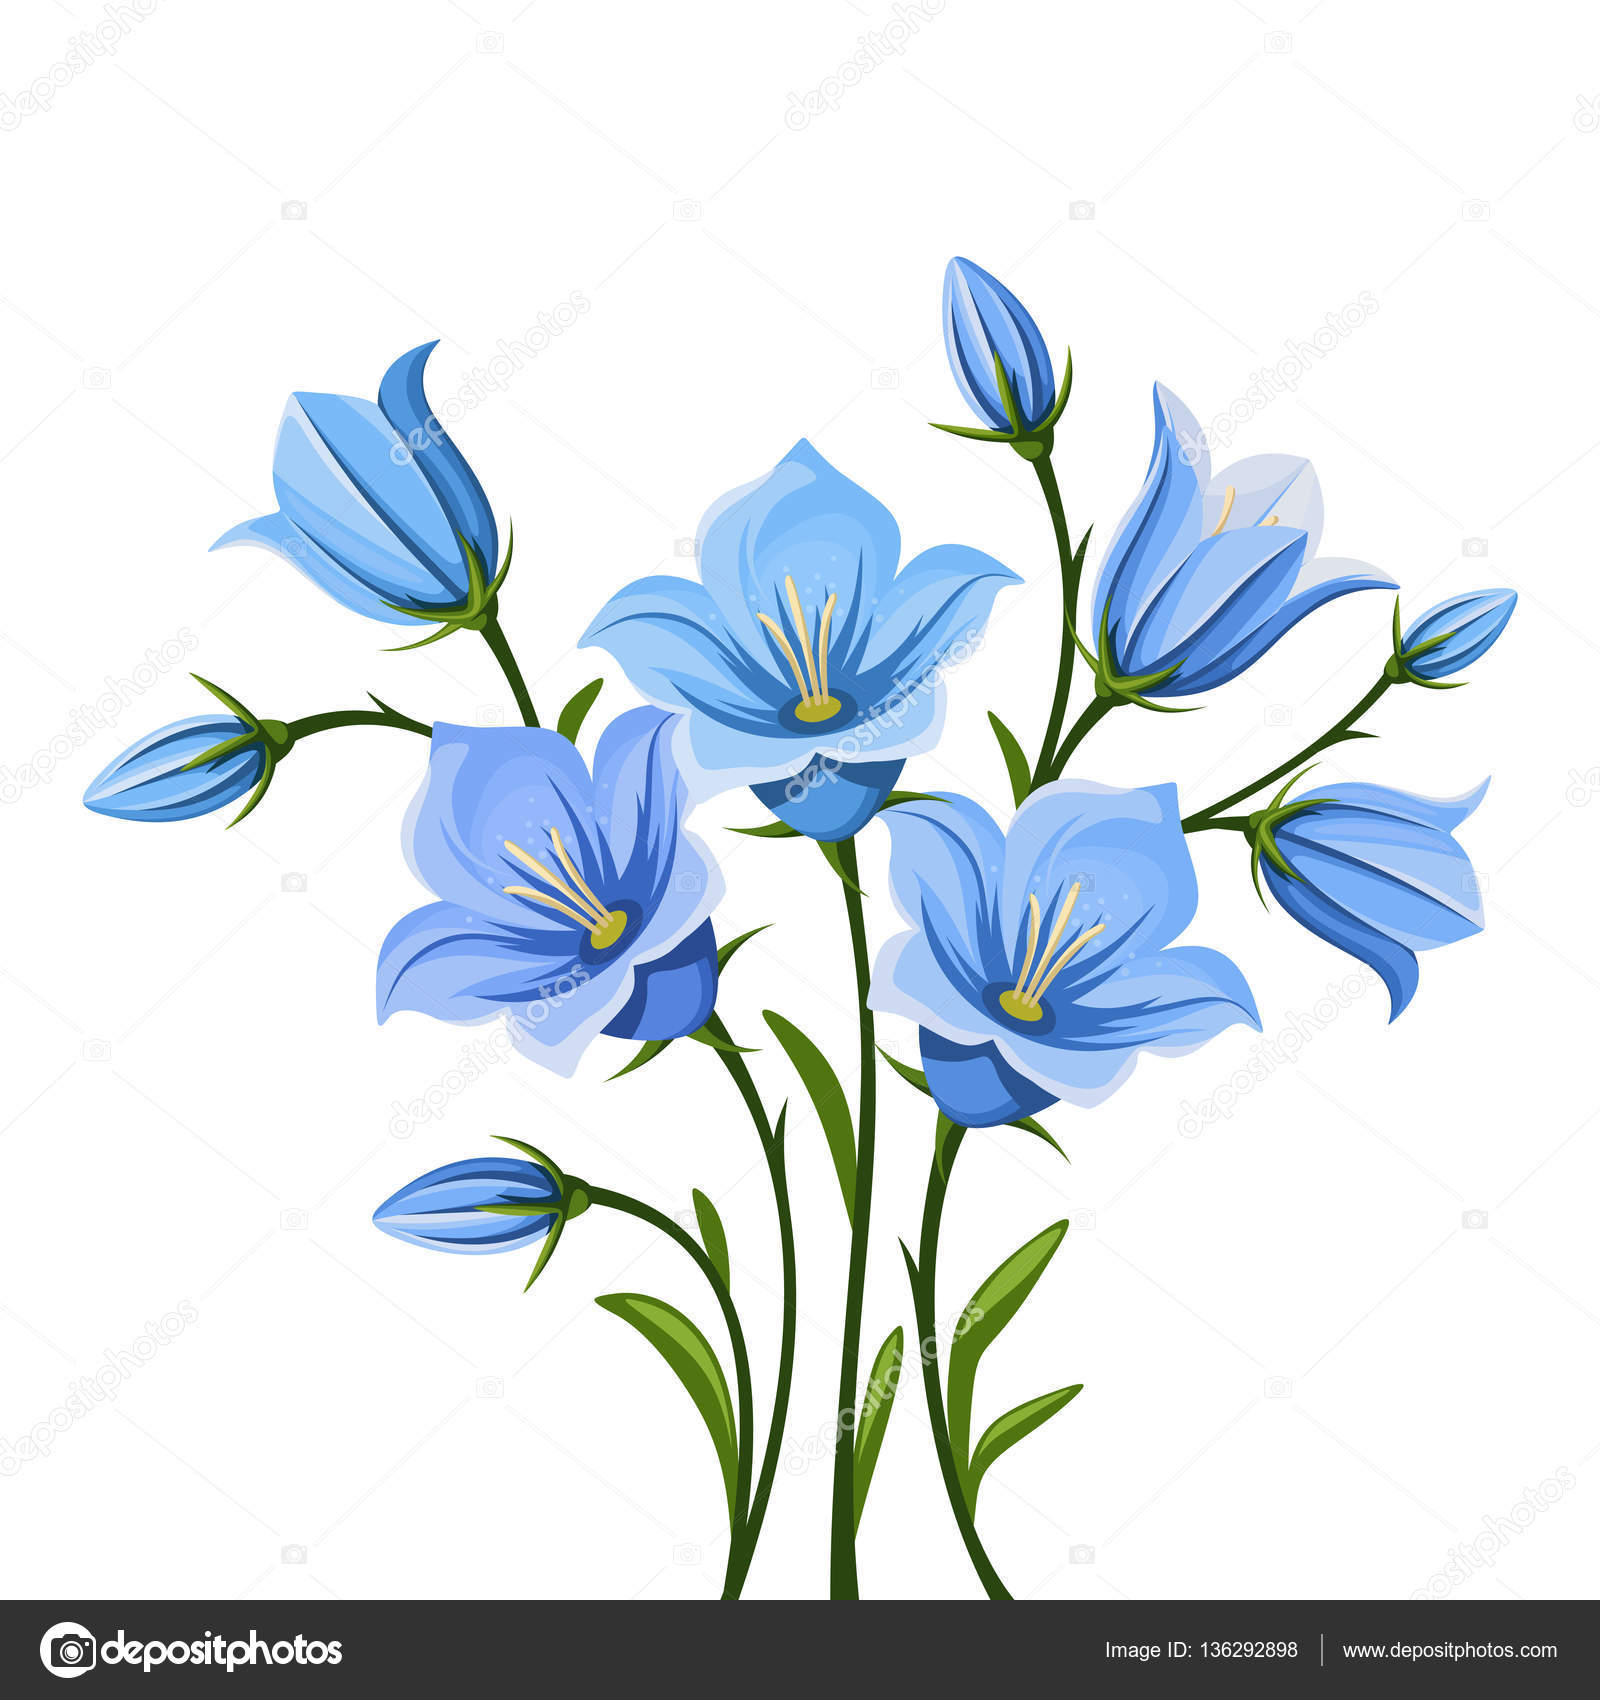 Bluebell flowers vector illustration stock vector naddya vector blue bluebell flowers isolated on a white background vector by naddya mightylinksfo Gallery